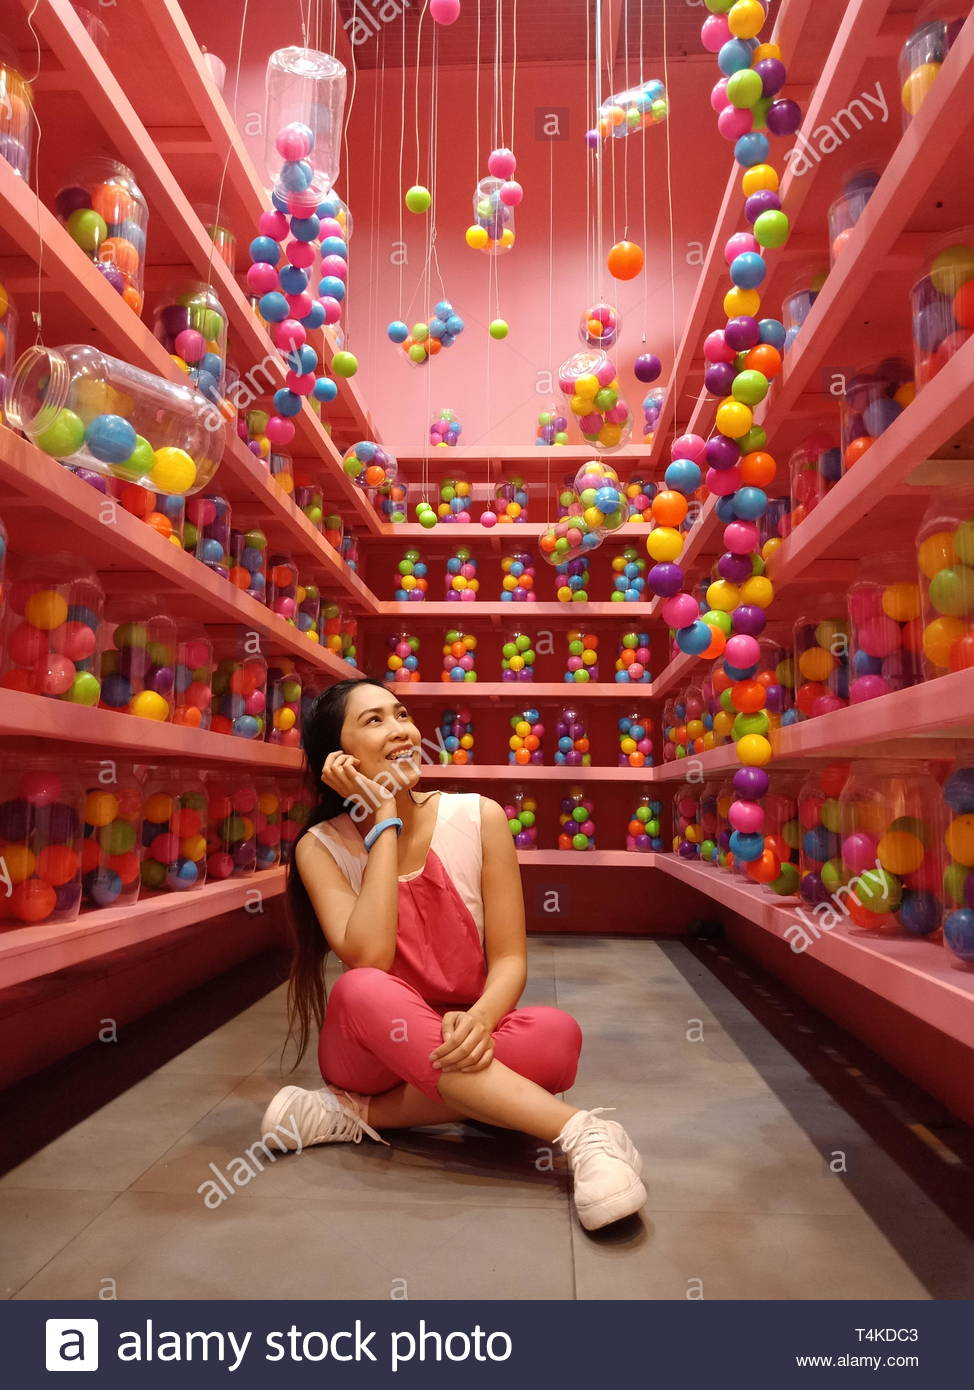 woman sitting in the middle of pink shelves - Stock Image